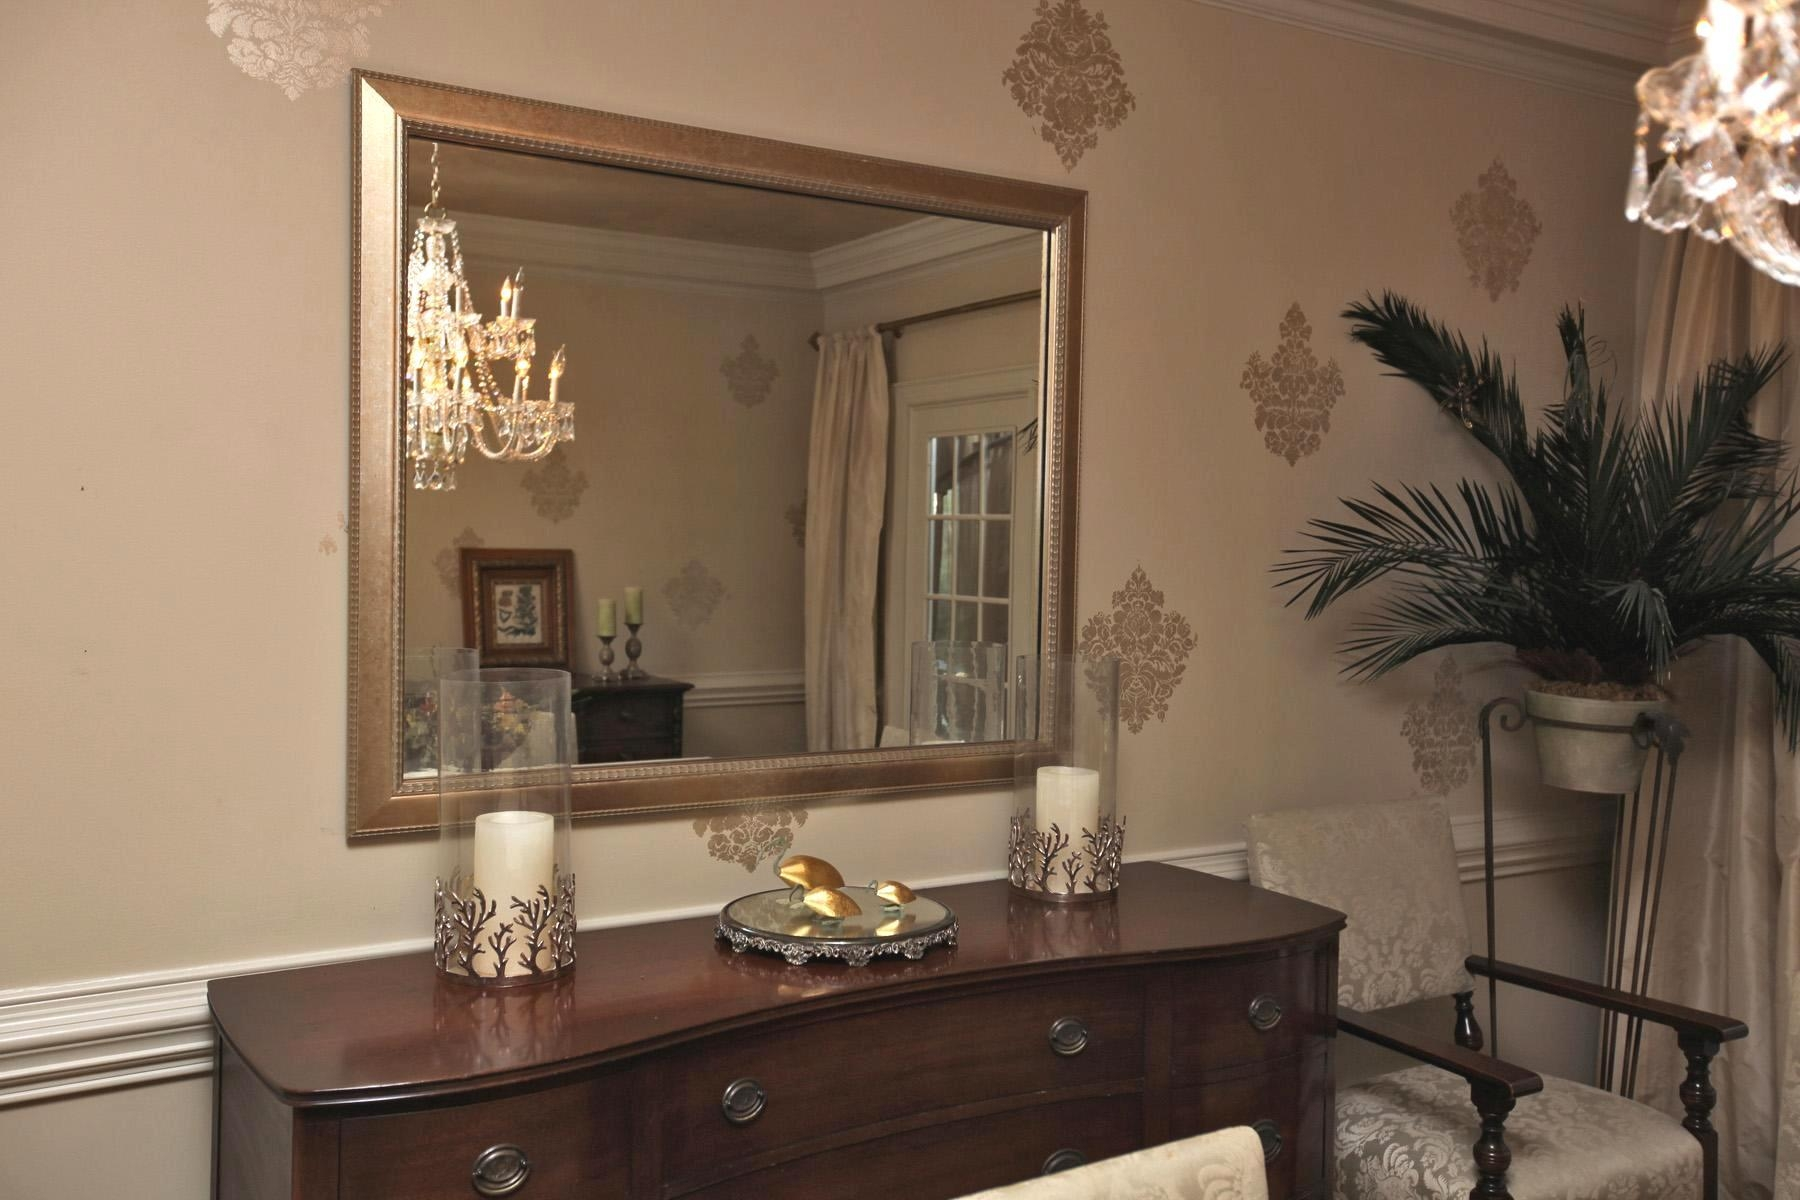 Dining Room : Mirrormate Frames Dining Room Mirrors Full Length Pertaining To Dining Mirrors (Image 10 of 20)